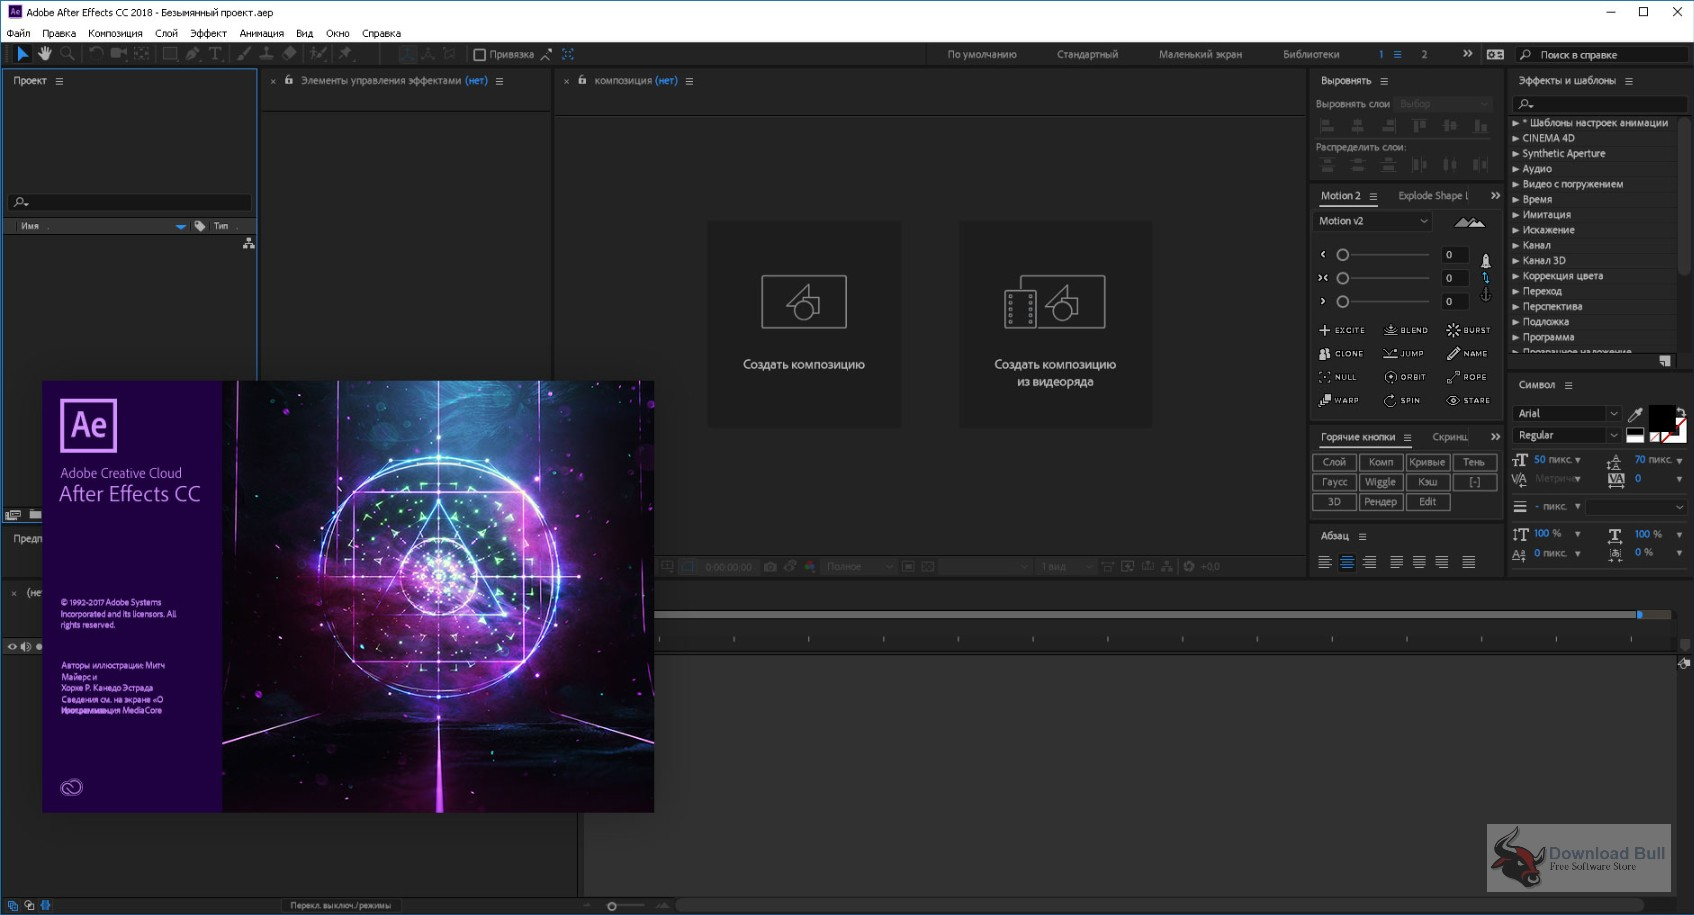 Portable Adobe After Effects CC 2018 15.1 Free Download